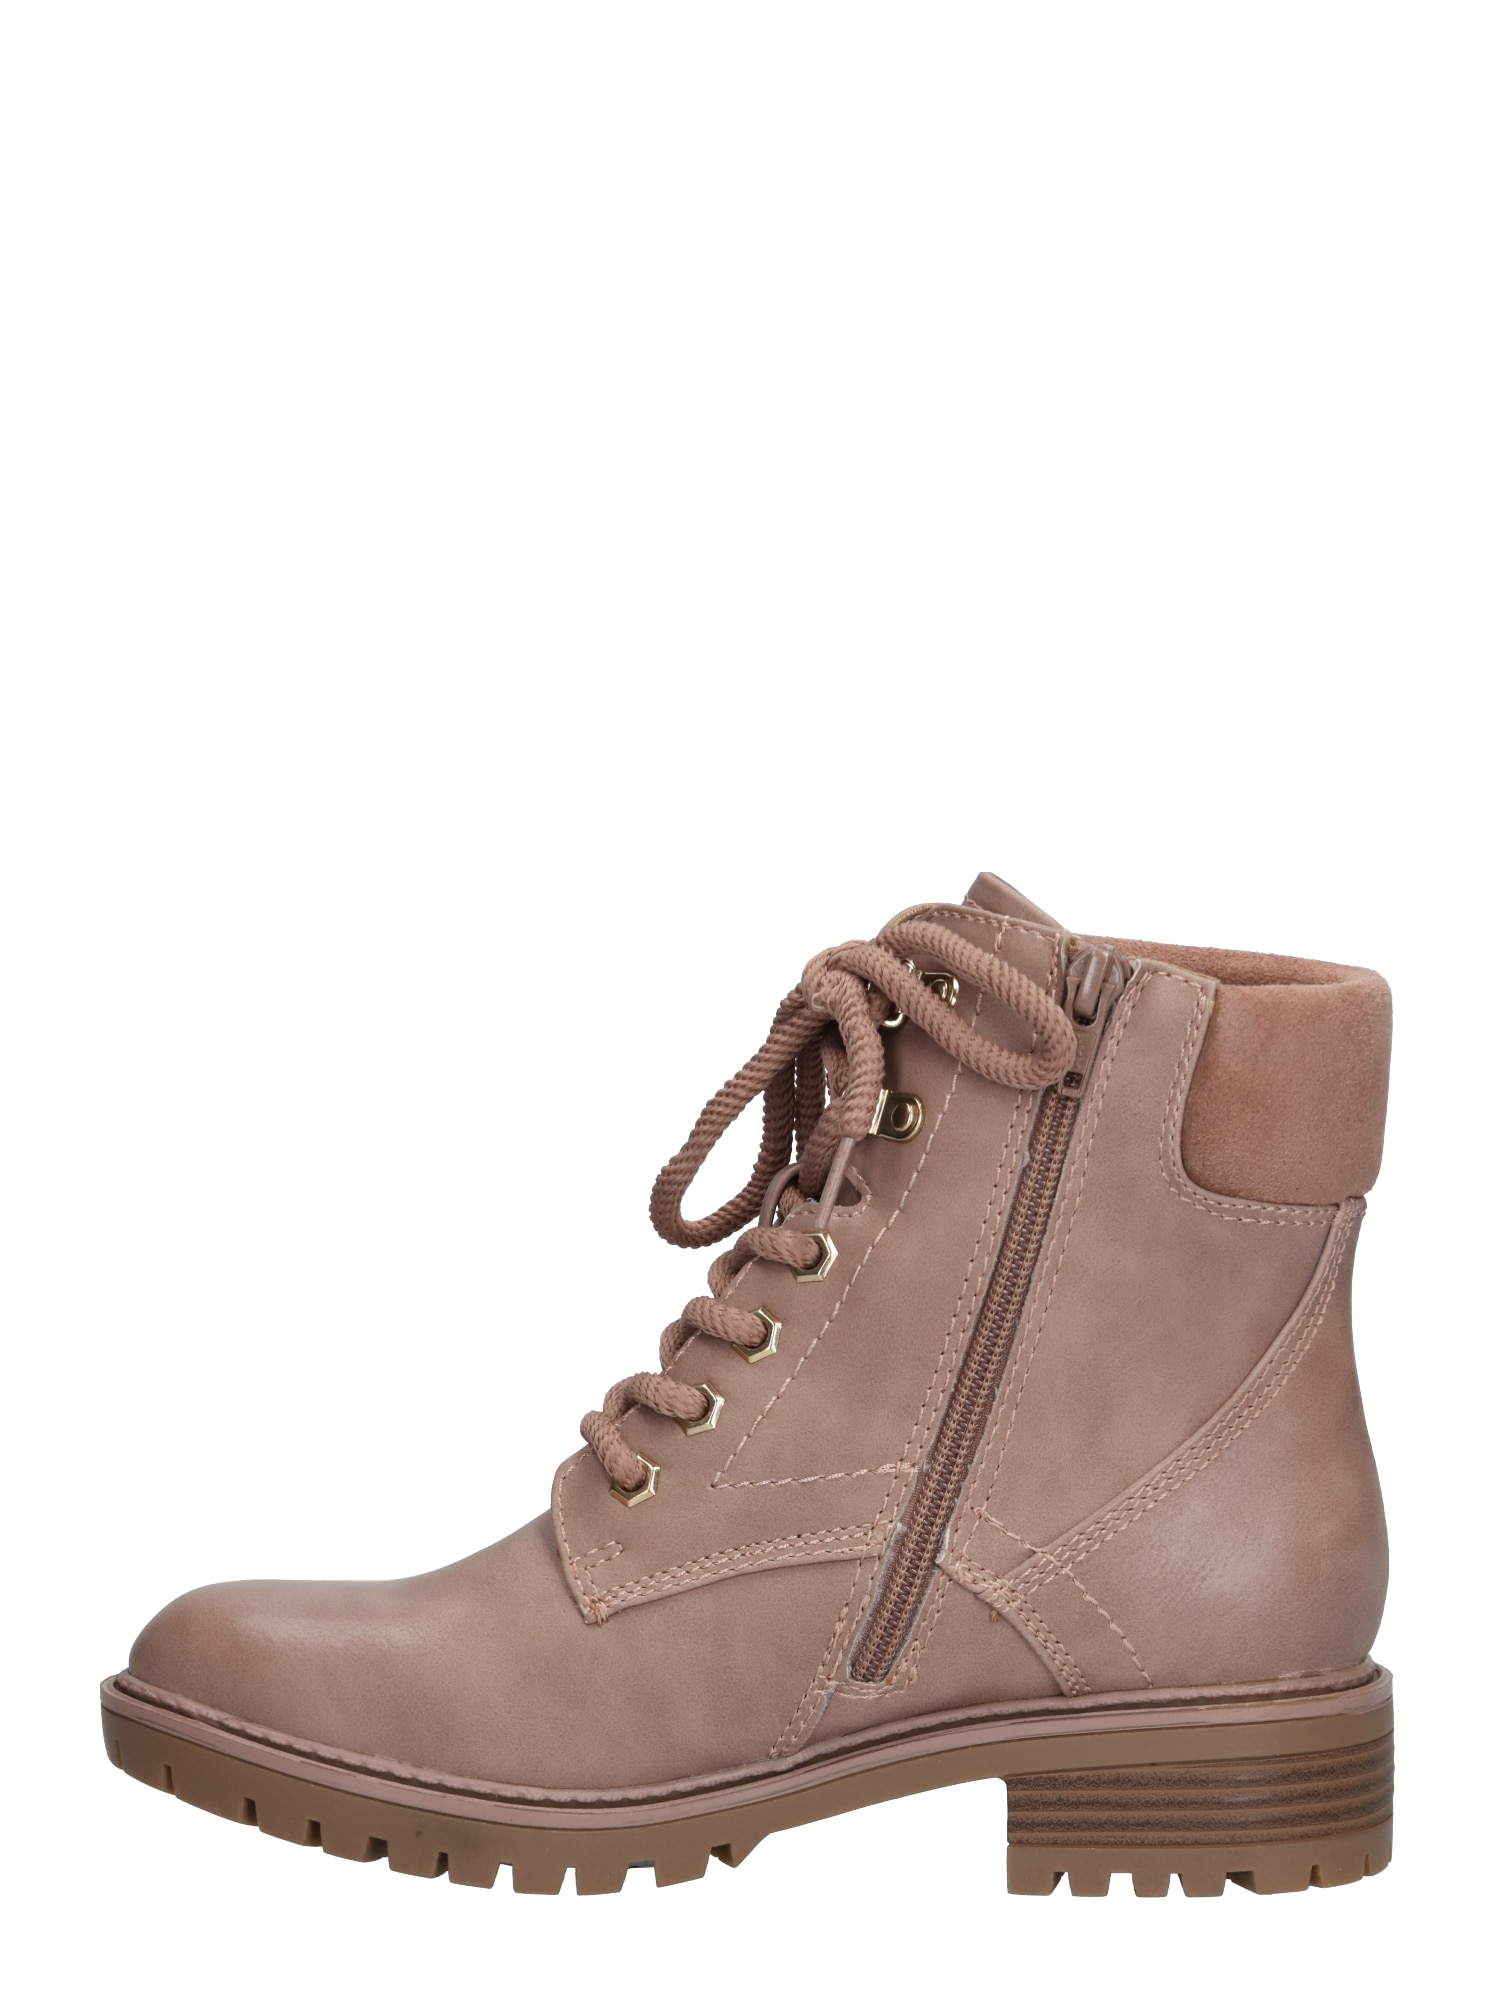 dorothy perkins - Stiefelette 'MONTREAL'